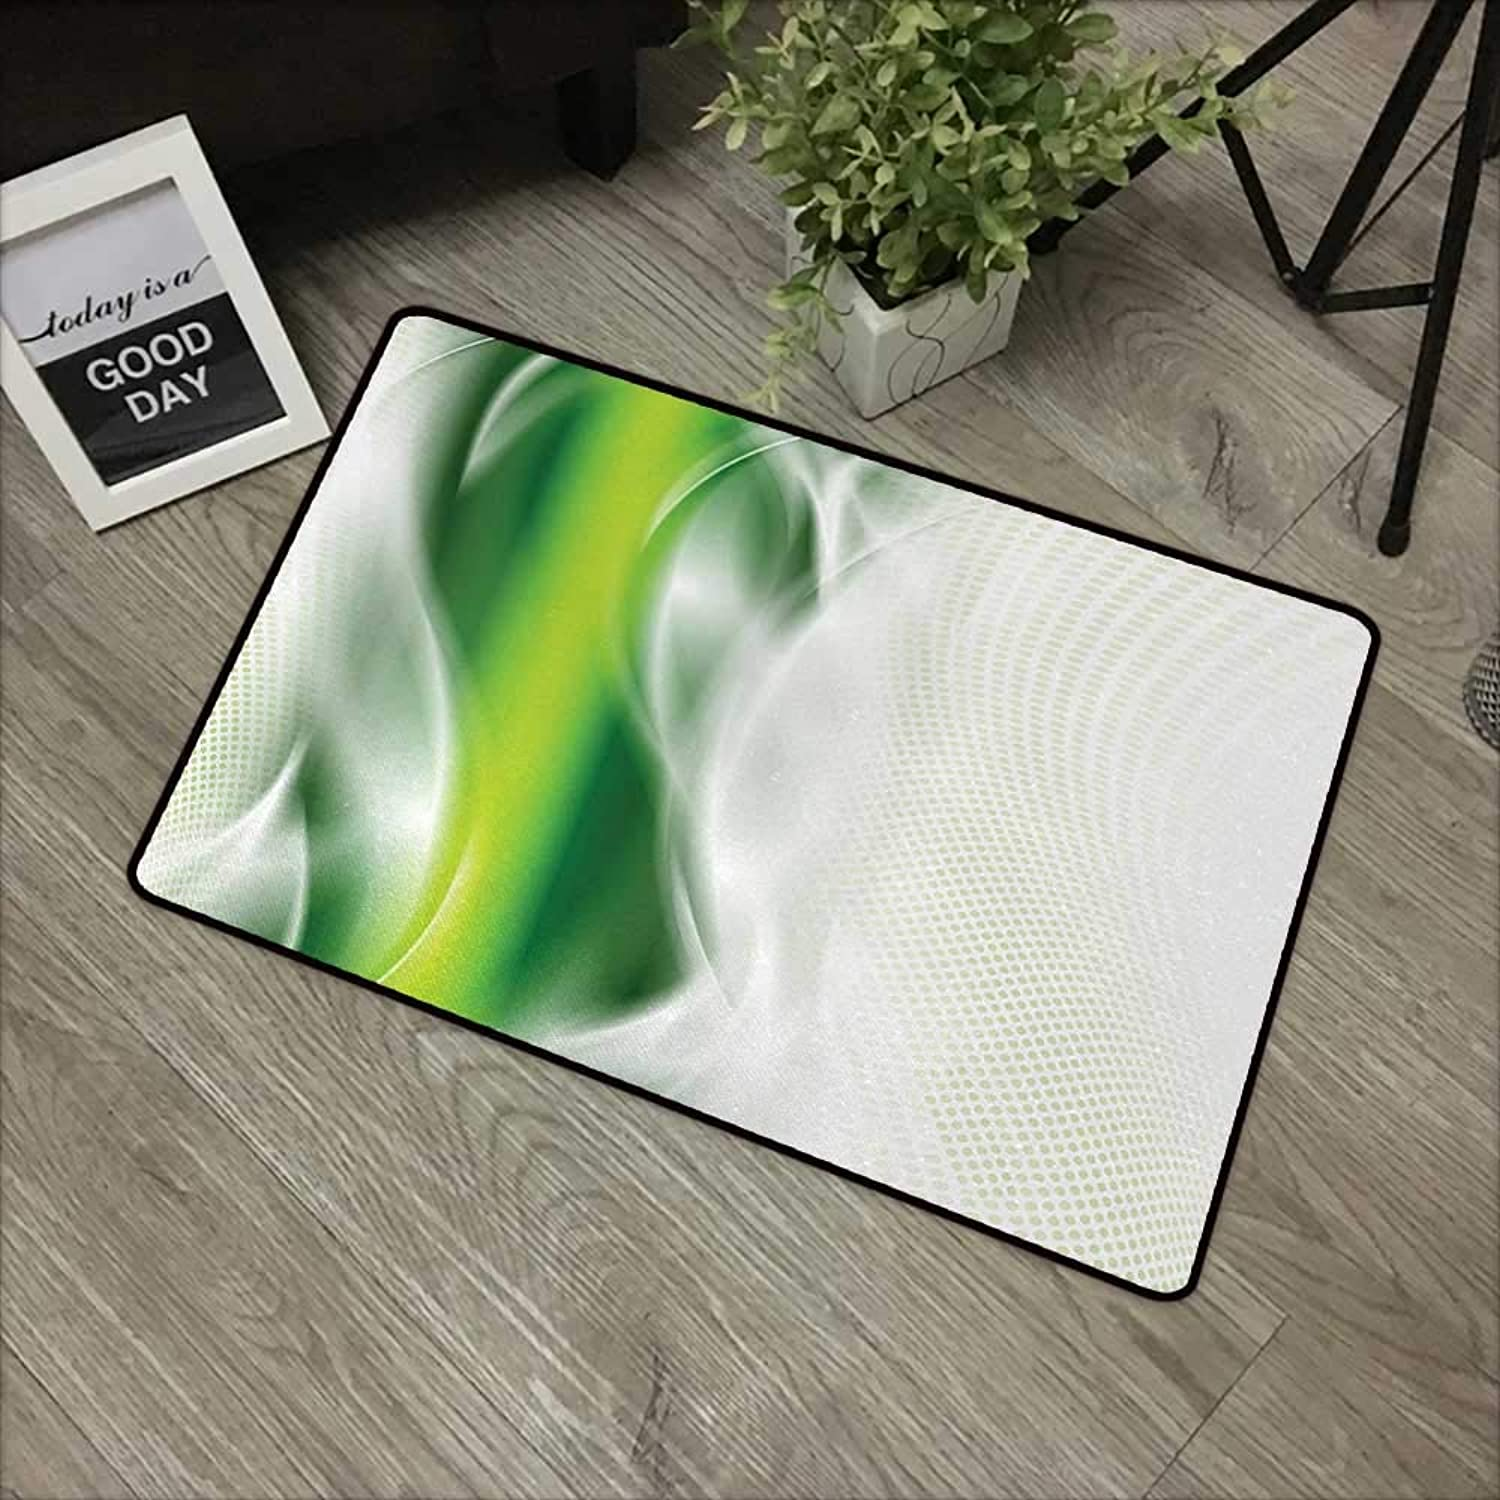 Bathroom door mat W35 x L59 INCH Abstract,Cool Floral like Green Strip with Wavy Detailed Design Image Print,White Green and Dark Green Easy to clean, no deformation, no fading Non-slip Door Mat Carpe